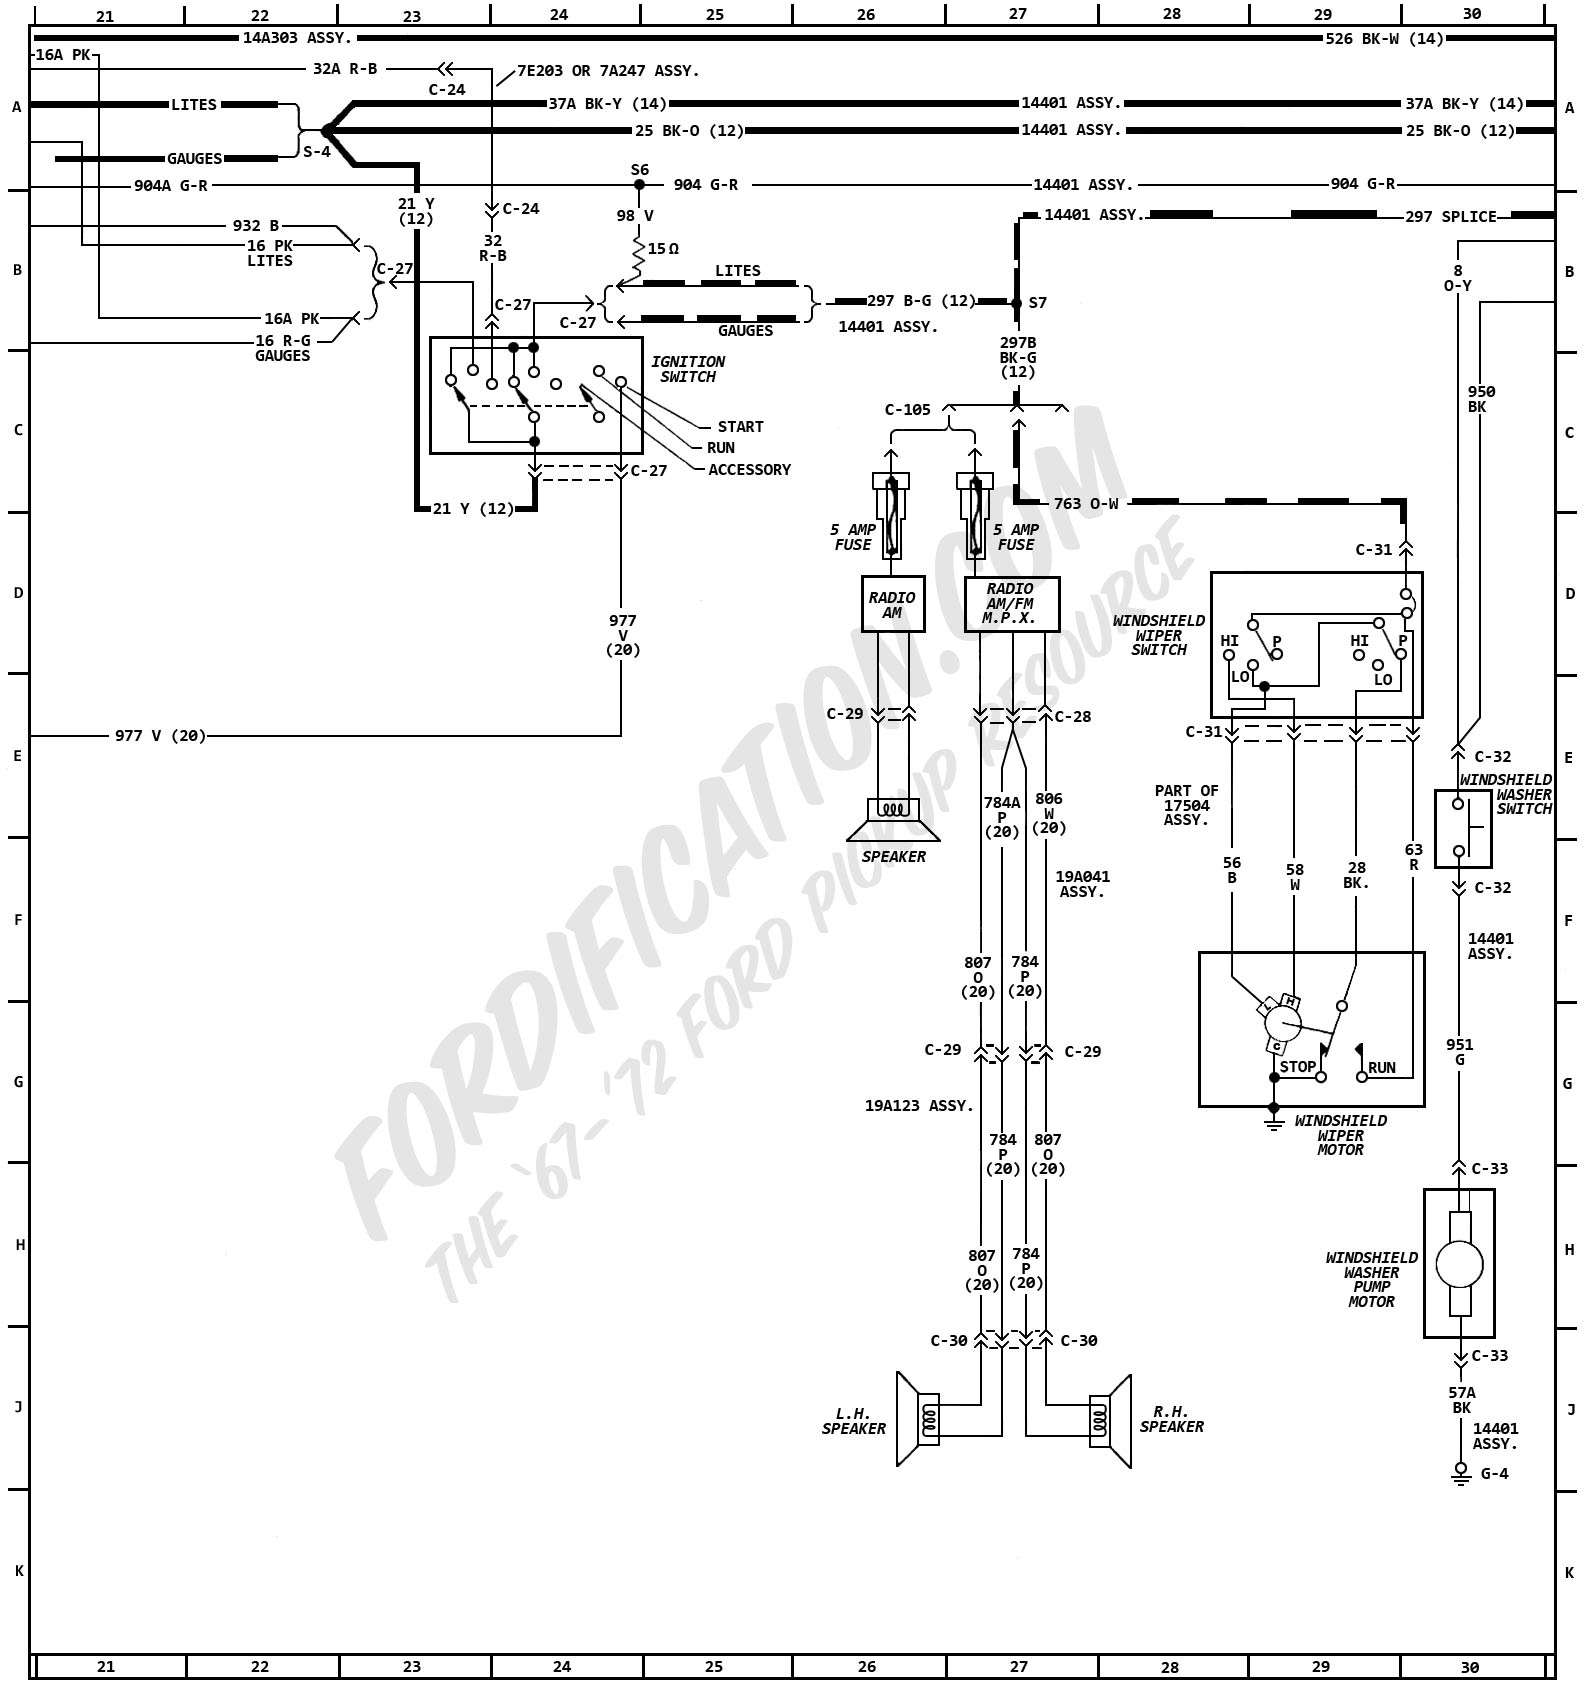 1972 ford truck wiring diagrams fordification com rh fordification com 1994 Ford 4.9 Engine Diagram 1994 Ford 4.9 Engine Diagram